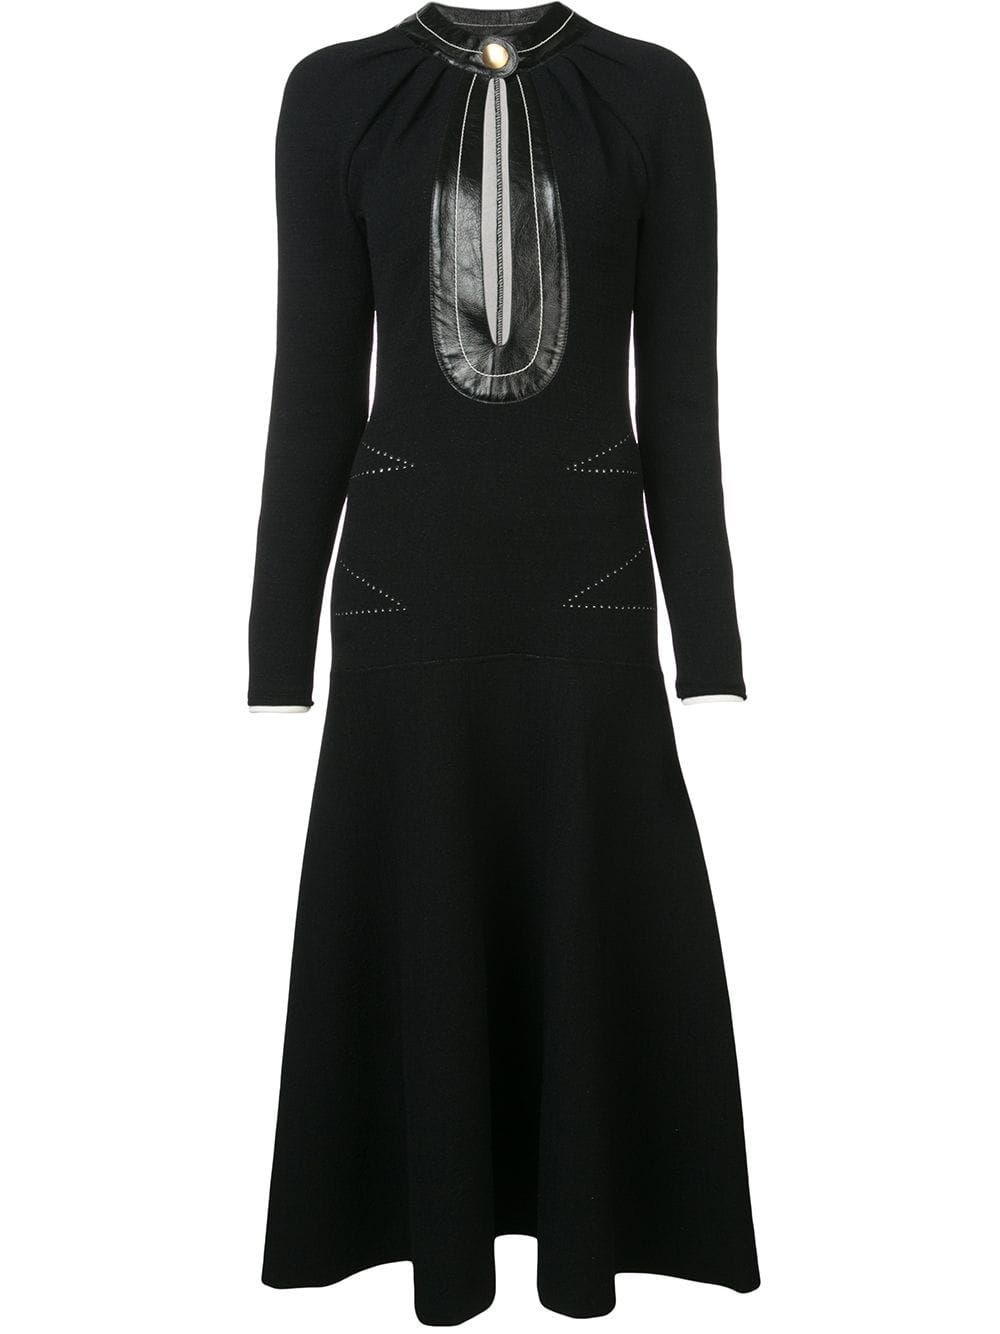 106765b2934 PROENZA SCHOULER PROENZA SCHOULER KEYHOLE KNITTED DRESS - BLACK.   proenzaschouler  cloth